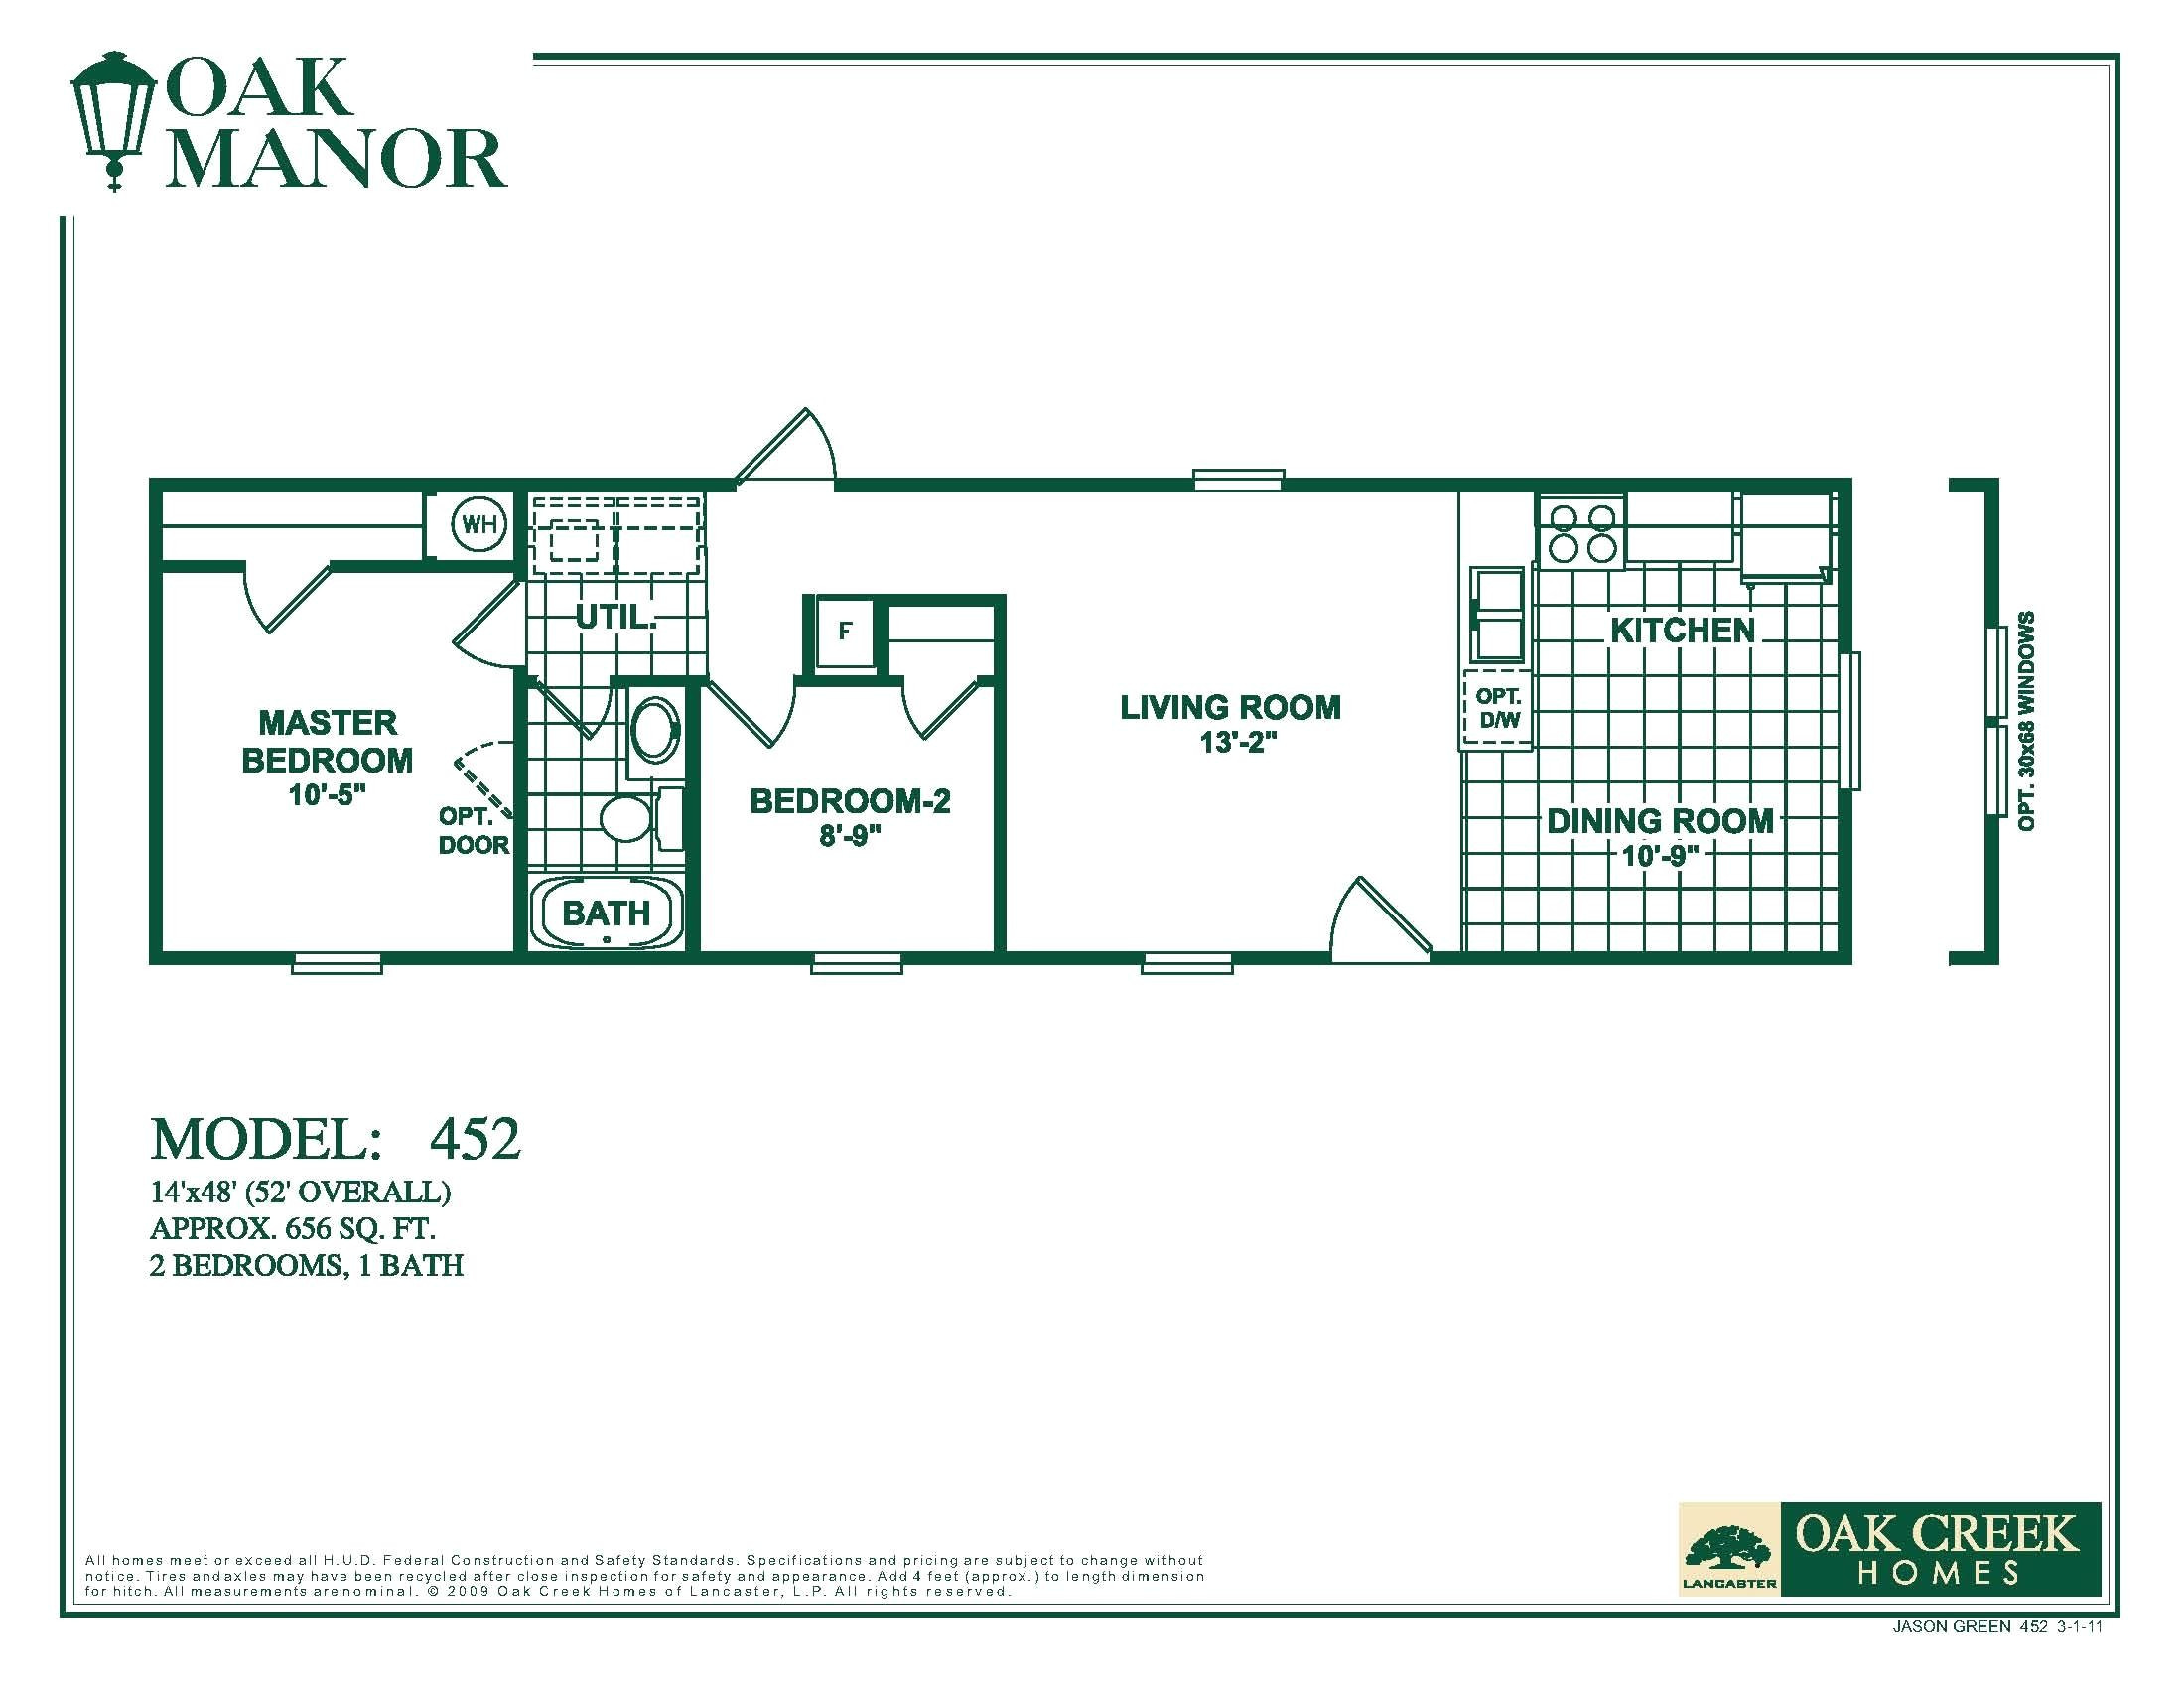 oak creek homes floor plans awesome oak creek homes floor plans fresh adams homes floor plans lovely